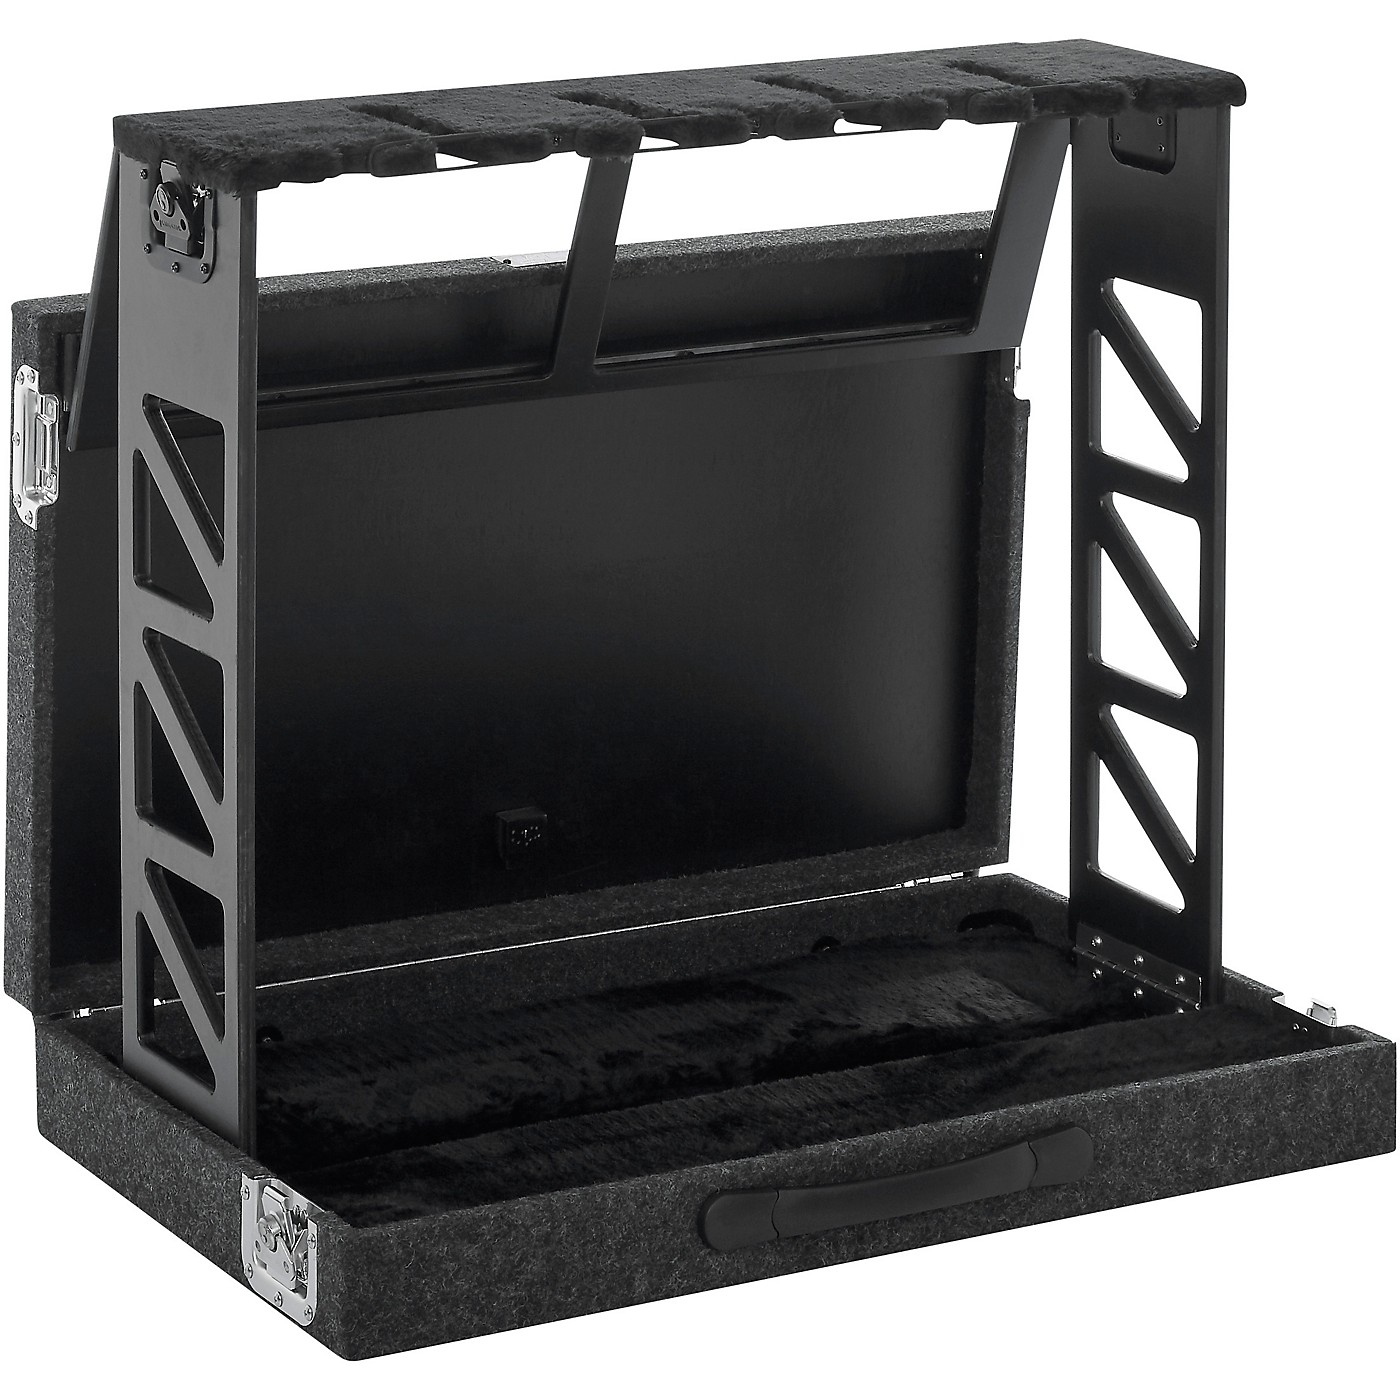 Gator GTRSTD4 Compact Rack Style Four (4) Guitar Stand that Folds Into Case thumbnail